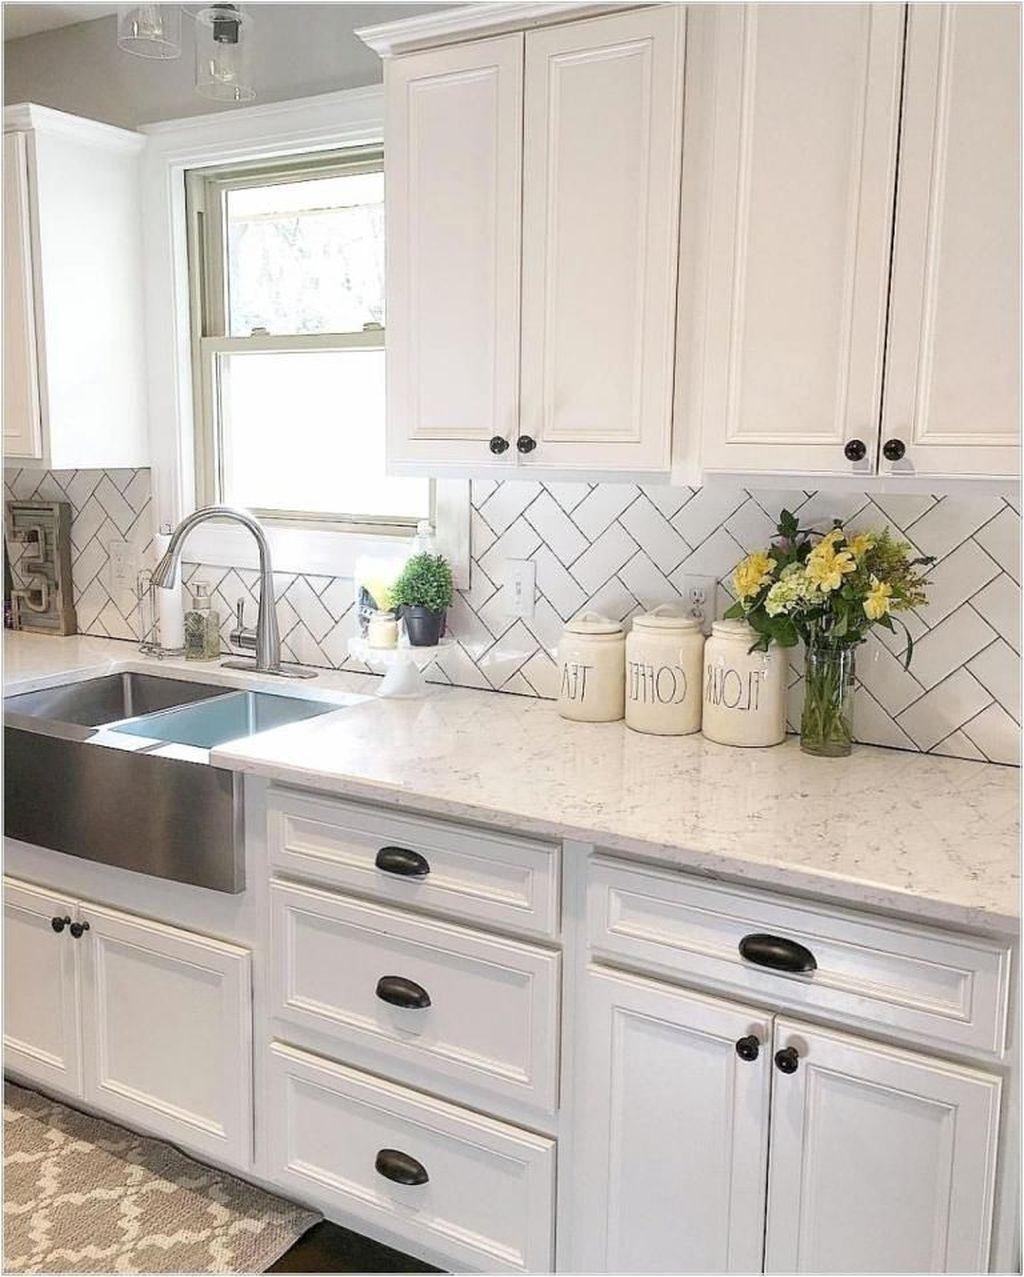 20+ Cool Modern Farmhouse Kitchen Backsplash Ideas